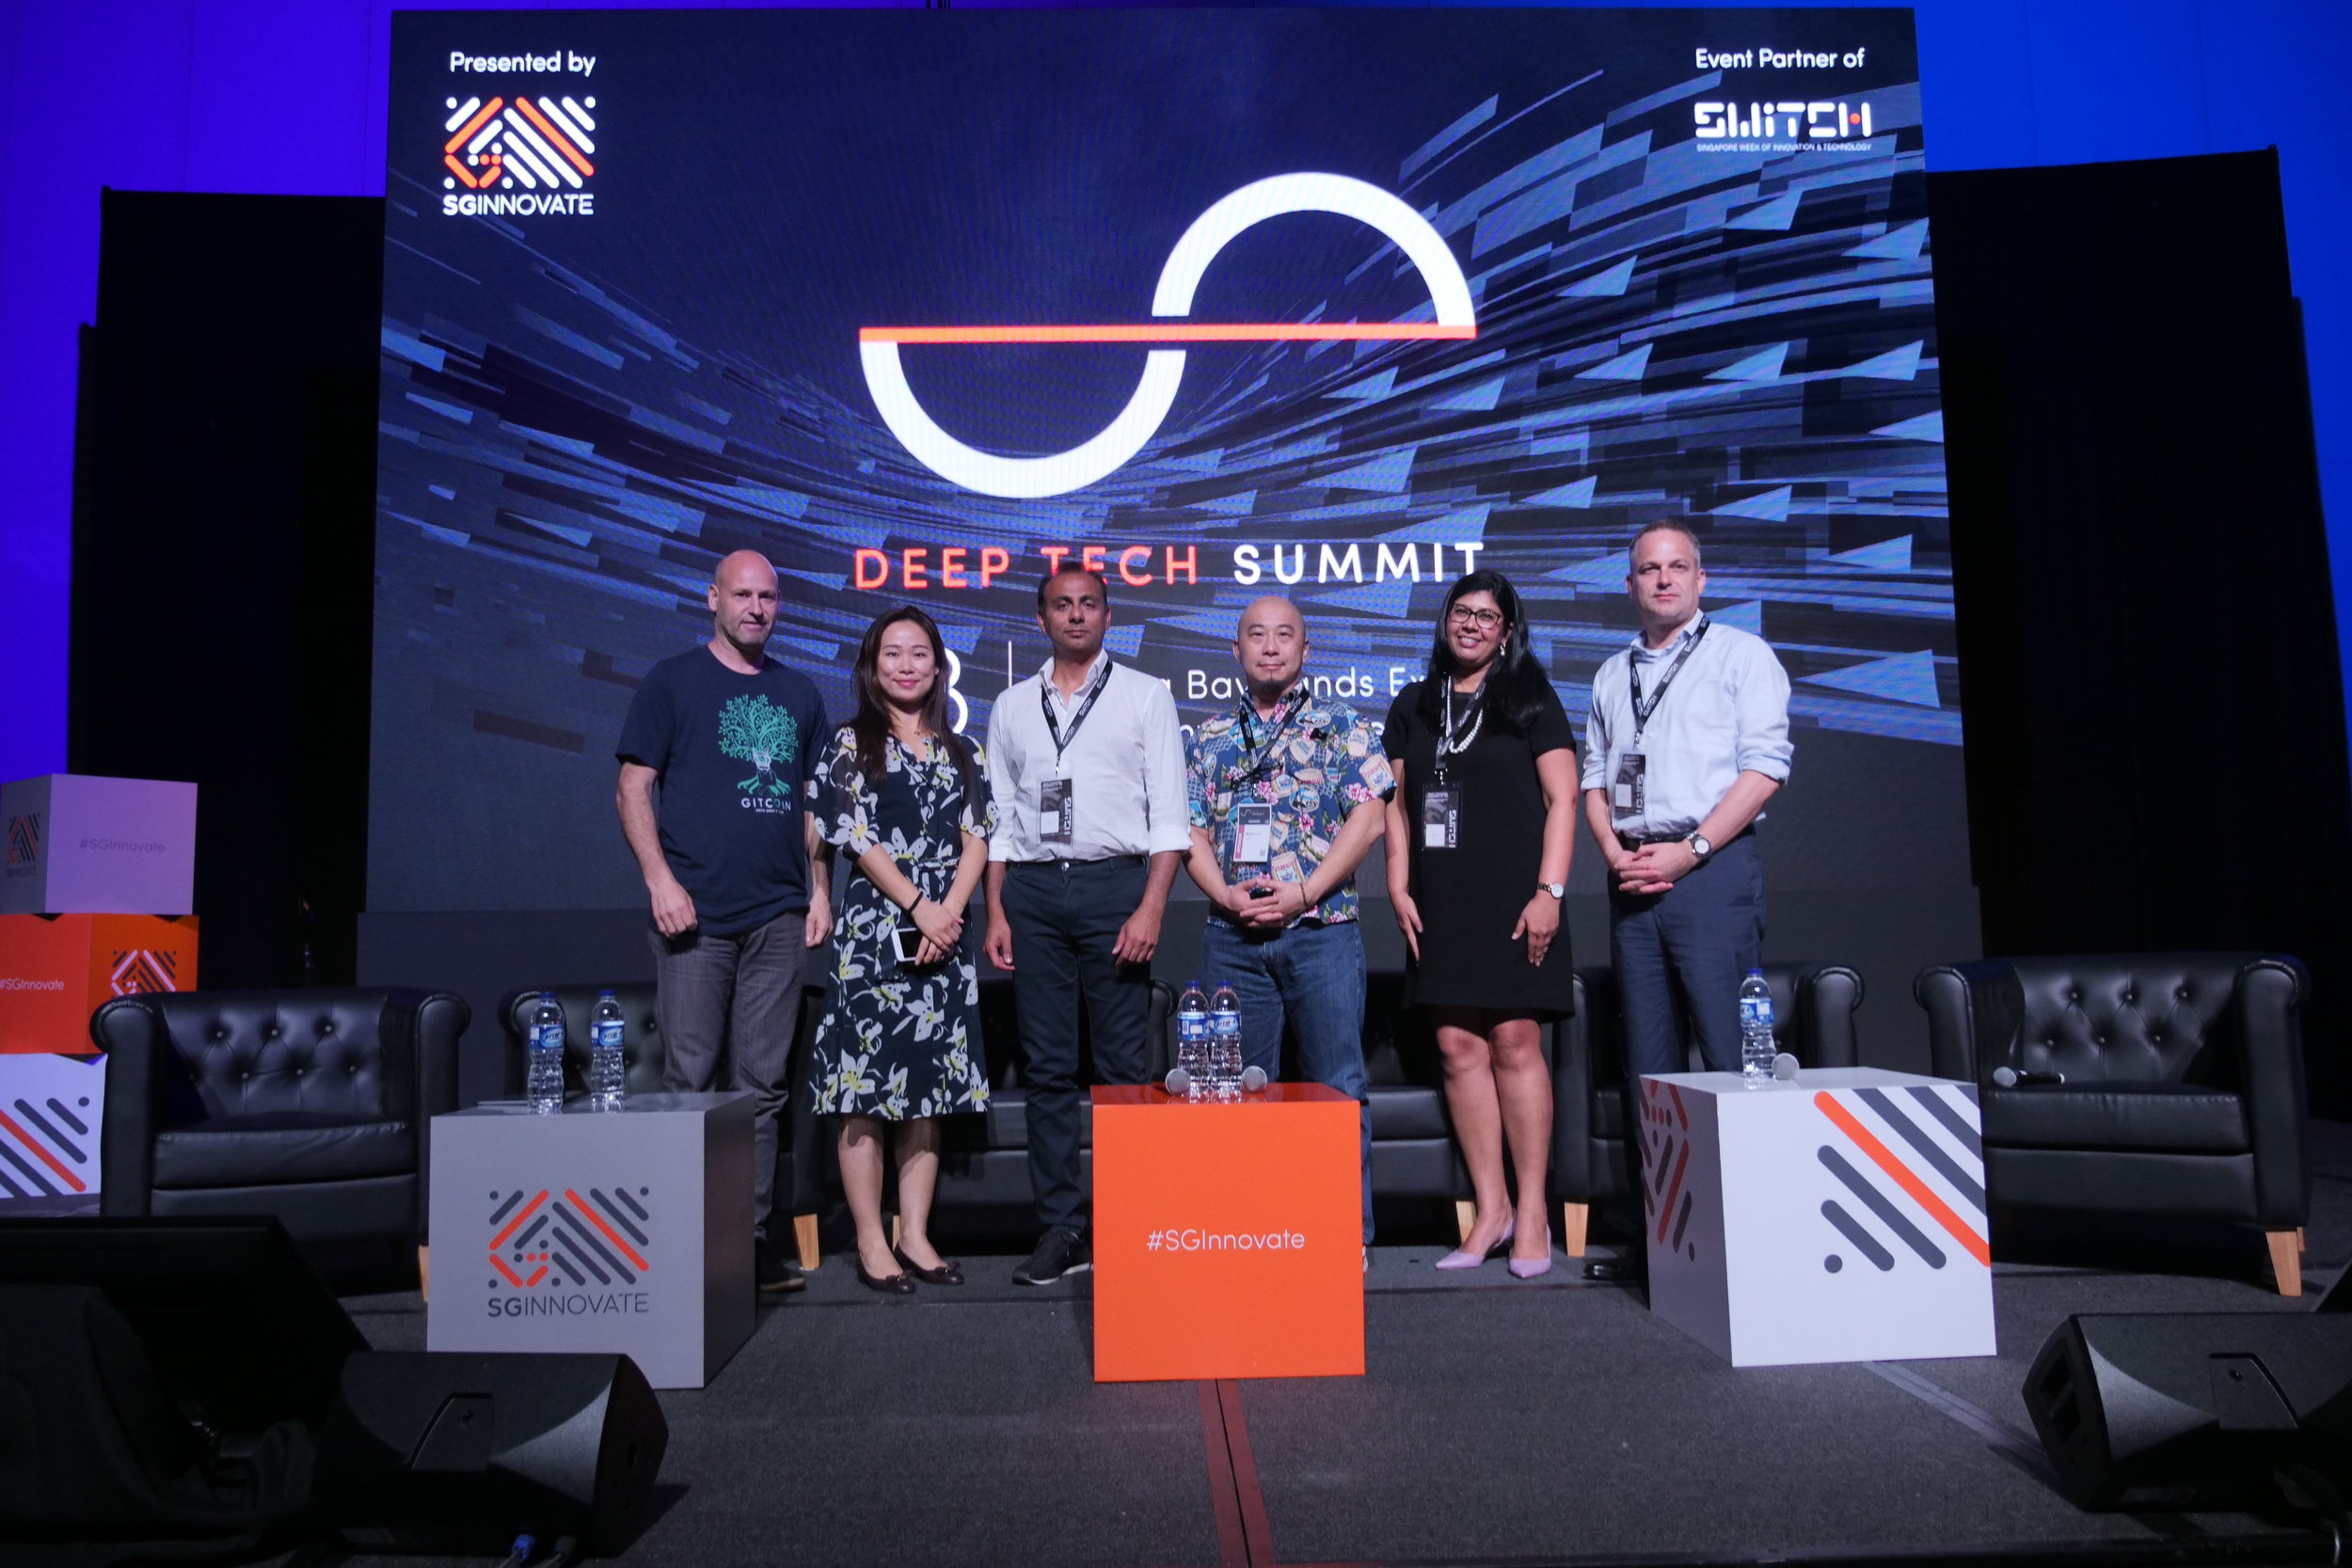 FROM LEFT: JOSEPH LUBIN COFOUNDER OF ETHEREUM AND FOUNDER/CEO OF CONSENSYS, MODERATOR EMMA CUI CEO LONGHASH SINGAPORE, HUMAYUN SHEIKH CEO AND FOUNDER OF FETCH.AI, MARTIN LIM CO-FOUNDER AND COO OF ELECTRIFY, MEETA VOUK DIRECTOR OF IBM RESEARCH CENTER AND SOEREN DUVIER MANAGING DIRECTOR OF BITA, ASIA.